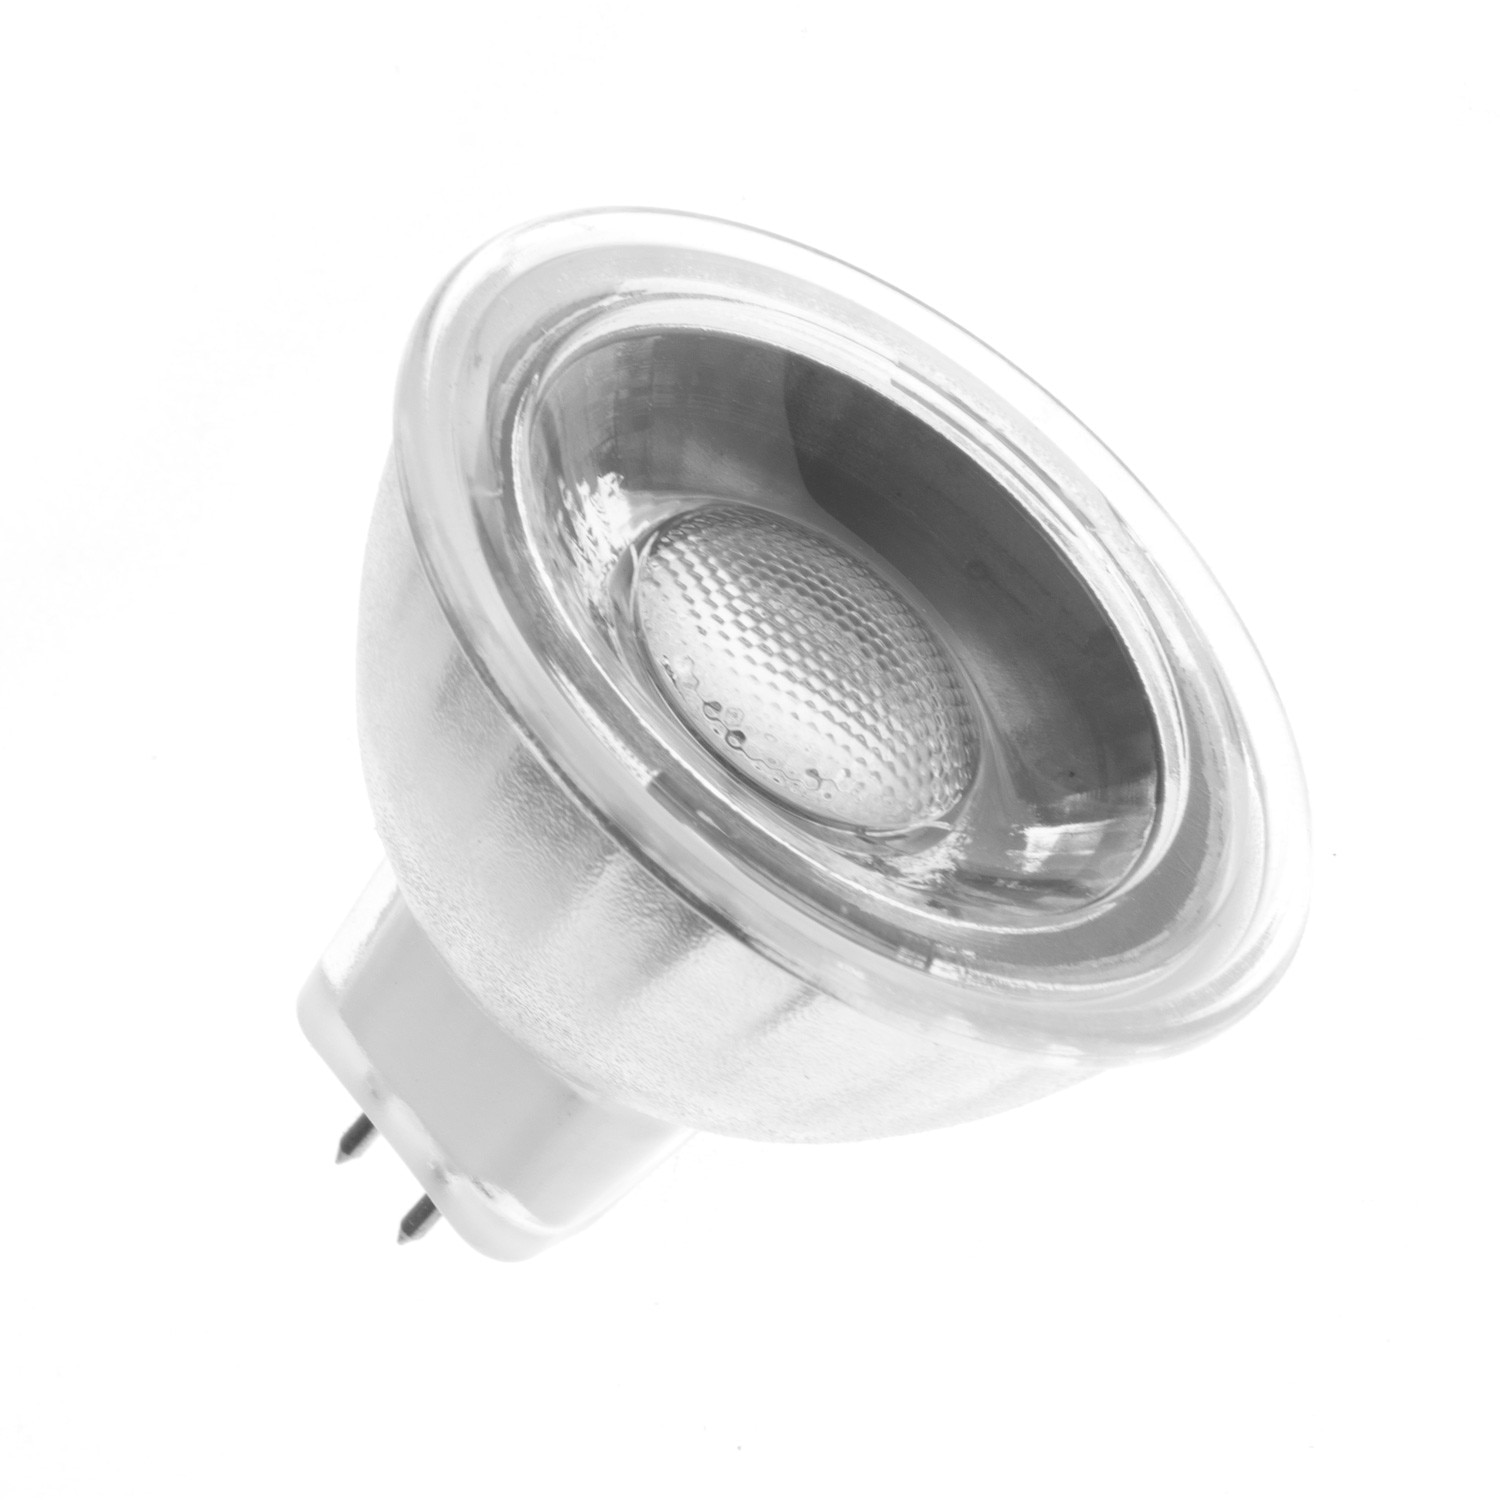 Ampoule led gu5 3 mr16 cob cristal 220v 45 5w ledkia for Lampade led 220v